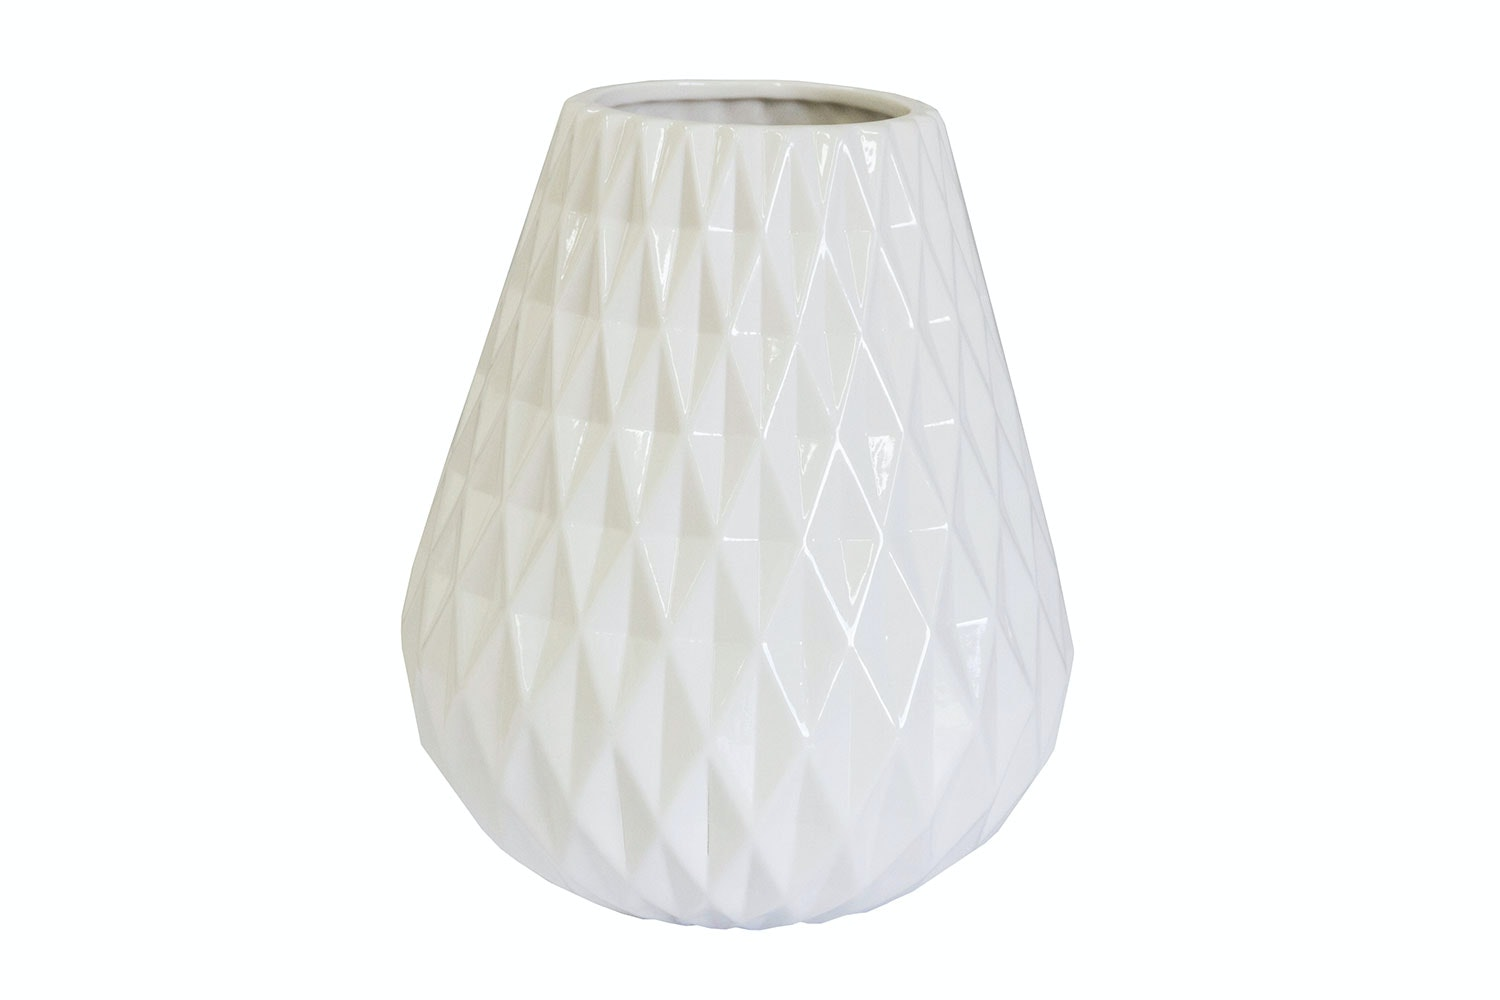 Porcelain Decorative Vase by Kerridge